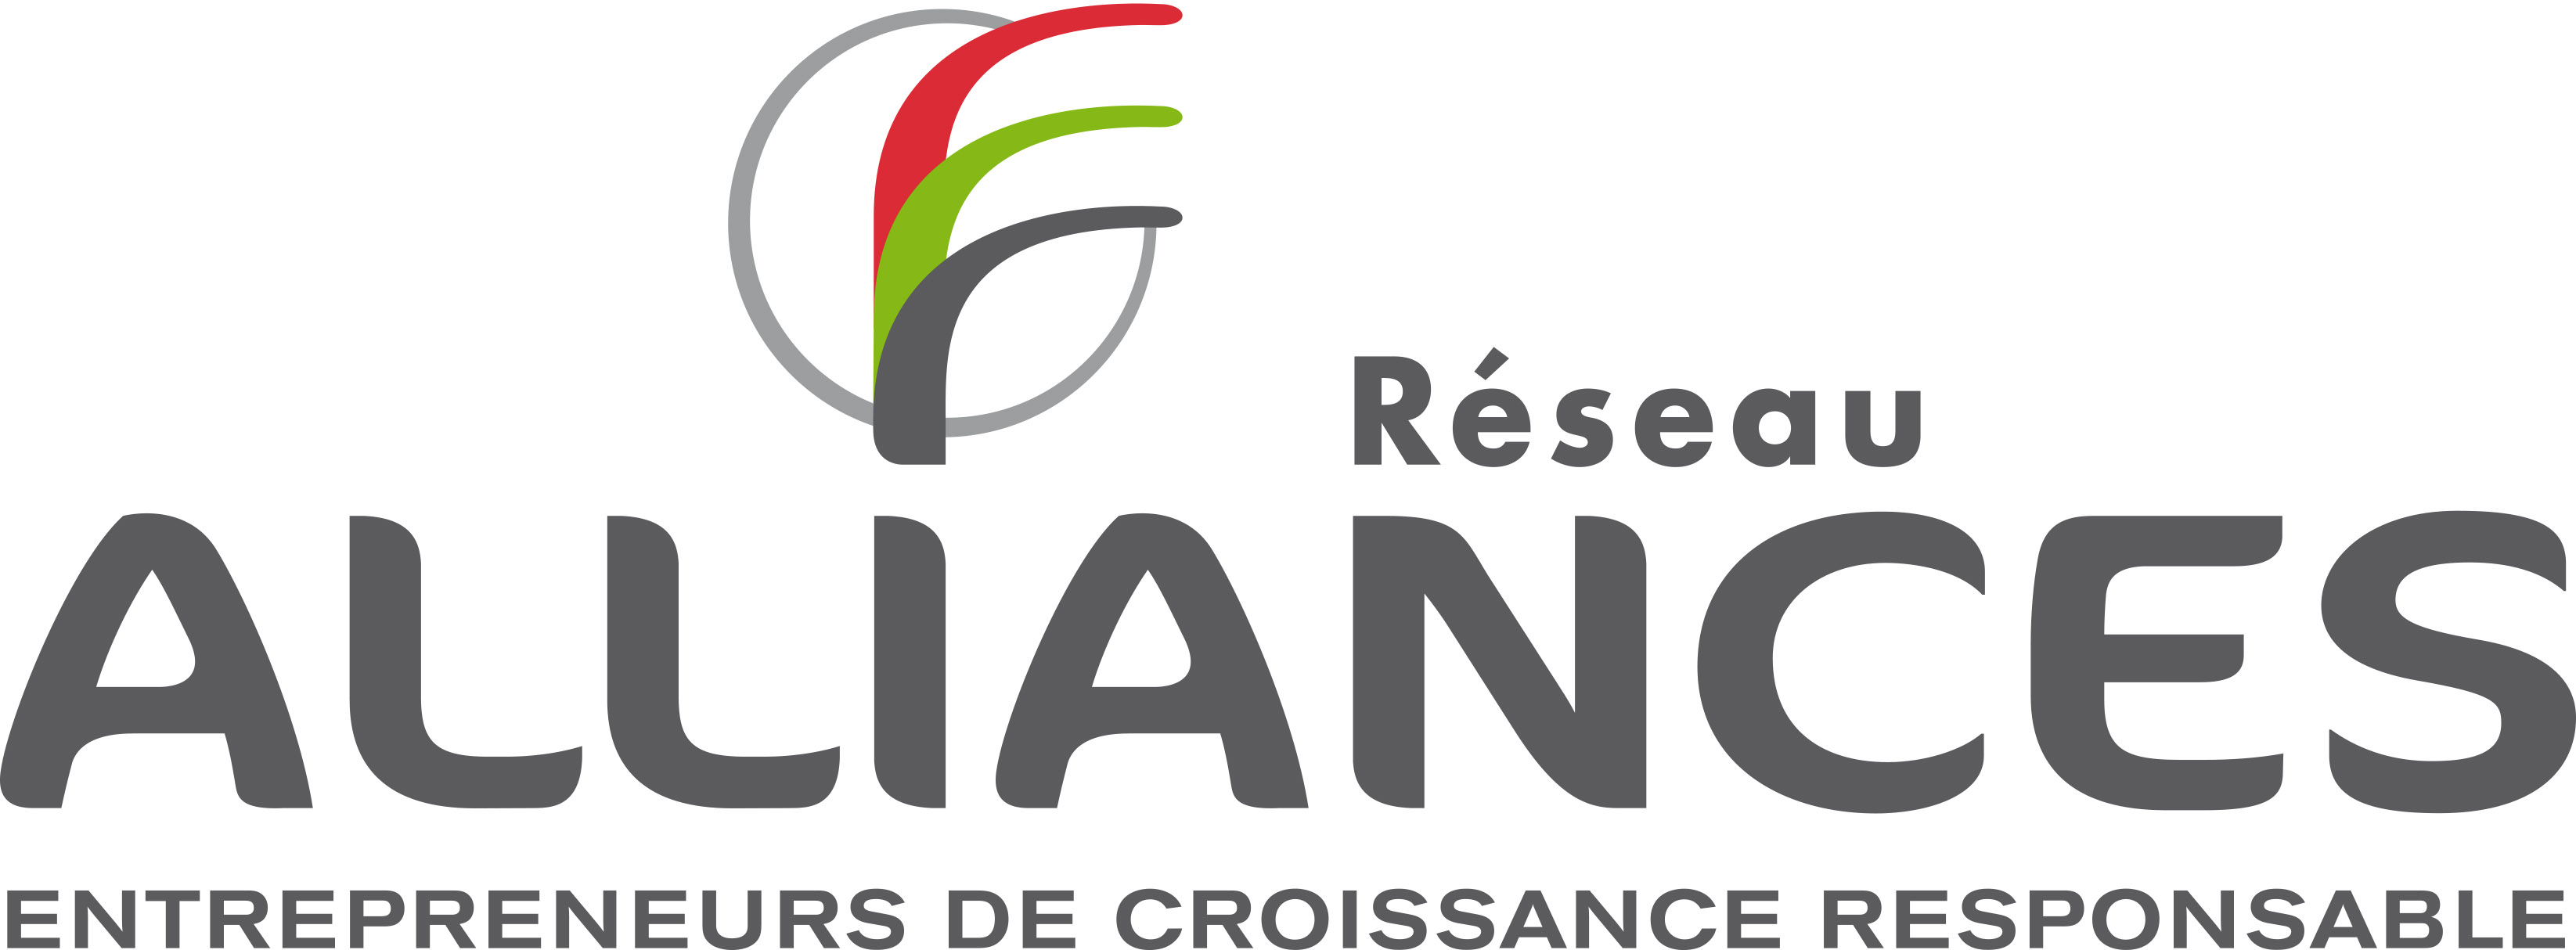 LogoAlliances